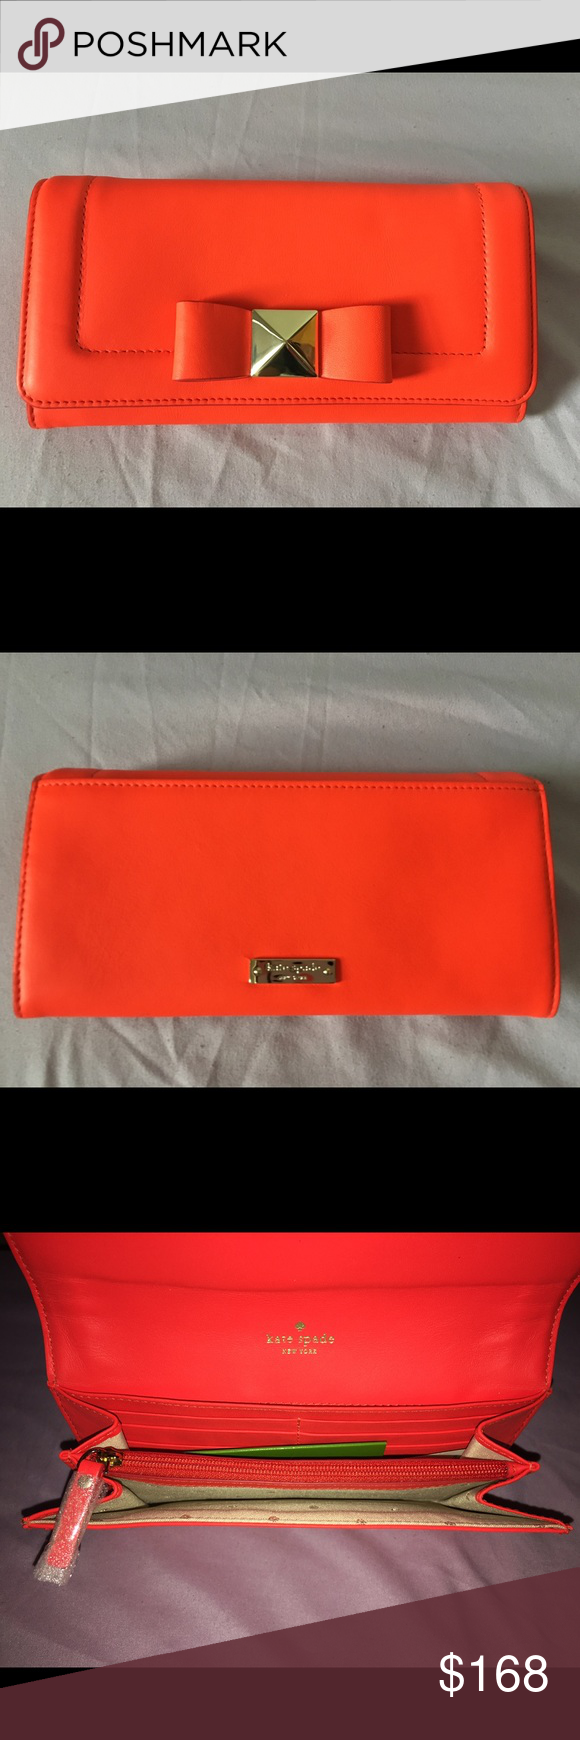 """Kate Spade """"Cindy"""" Bow Terrace Wallet - Maraschino Affixed with a sweet bow and dose of shine (thanks to golden pyramid stud at the center) this smooth leather continental wallet is a chic spot to show your cash, cards, receipts and paper odds-and-ends. kate spade Bags Wallets"""